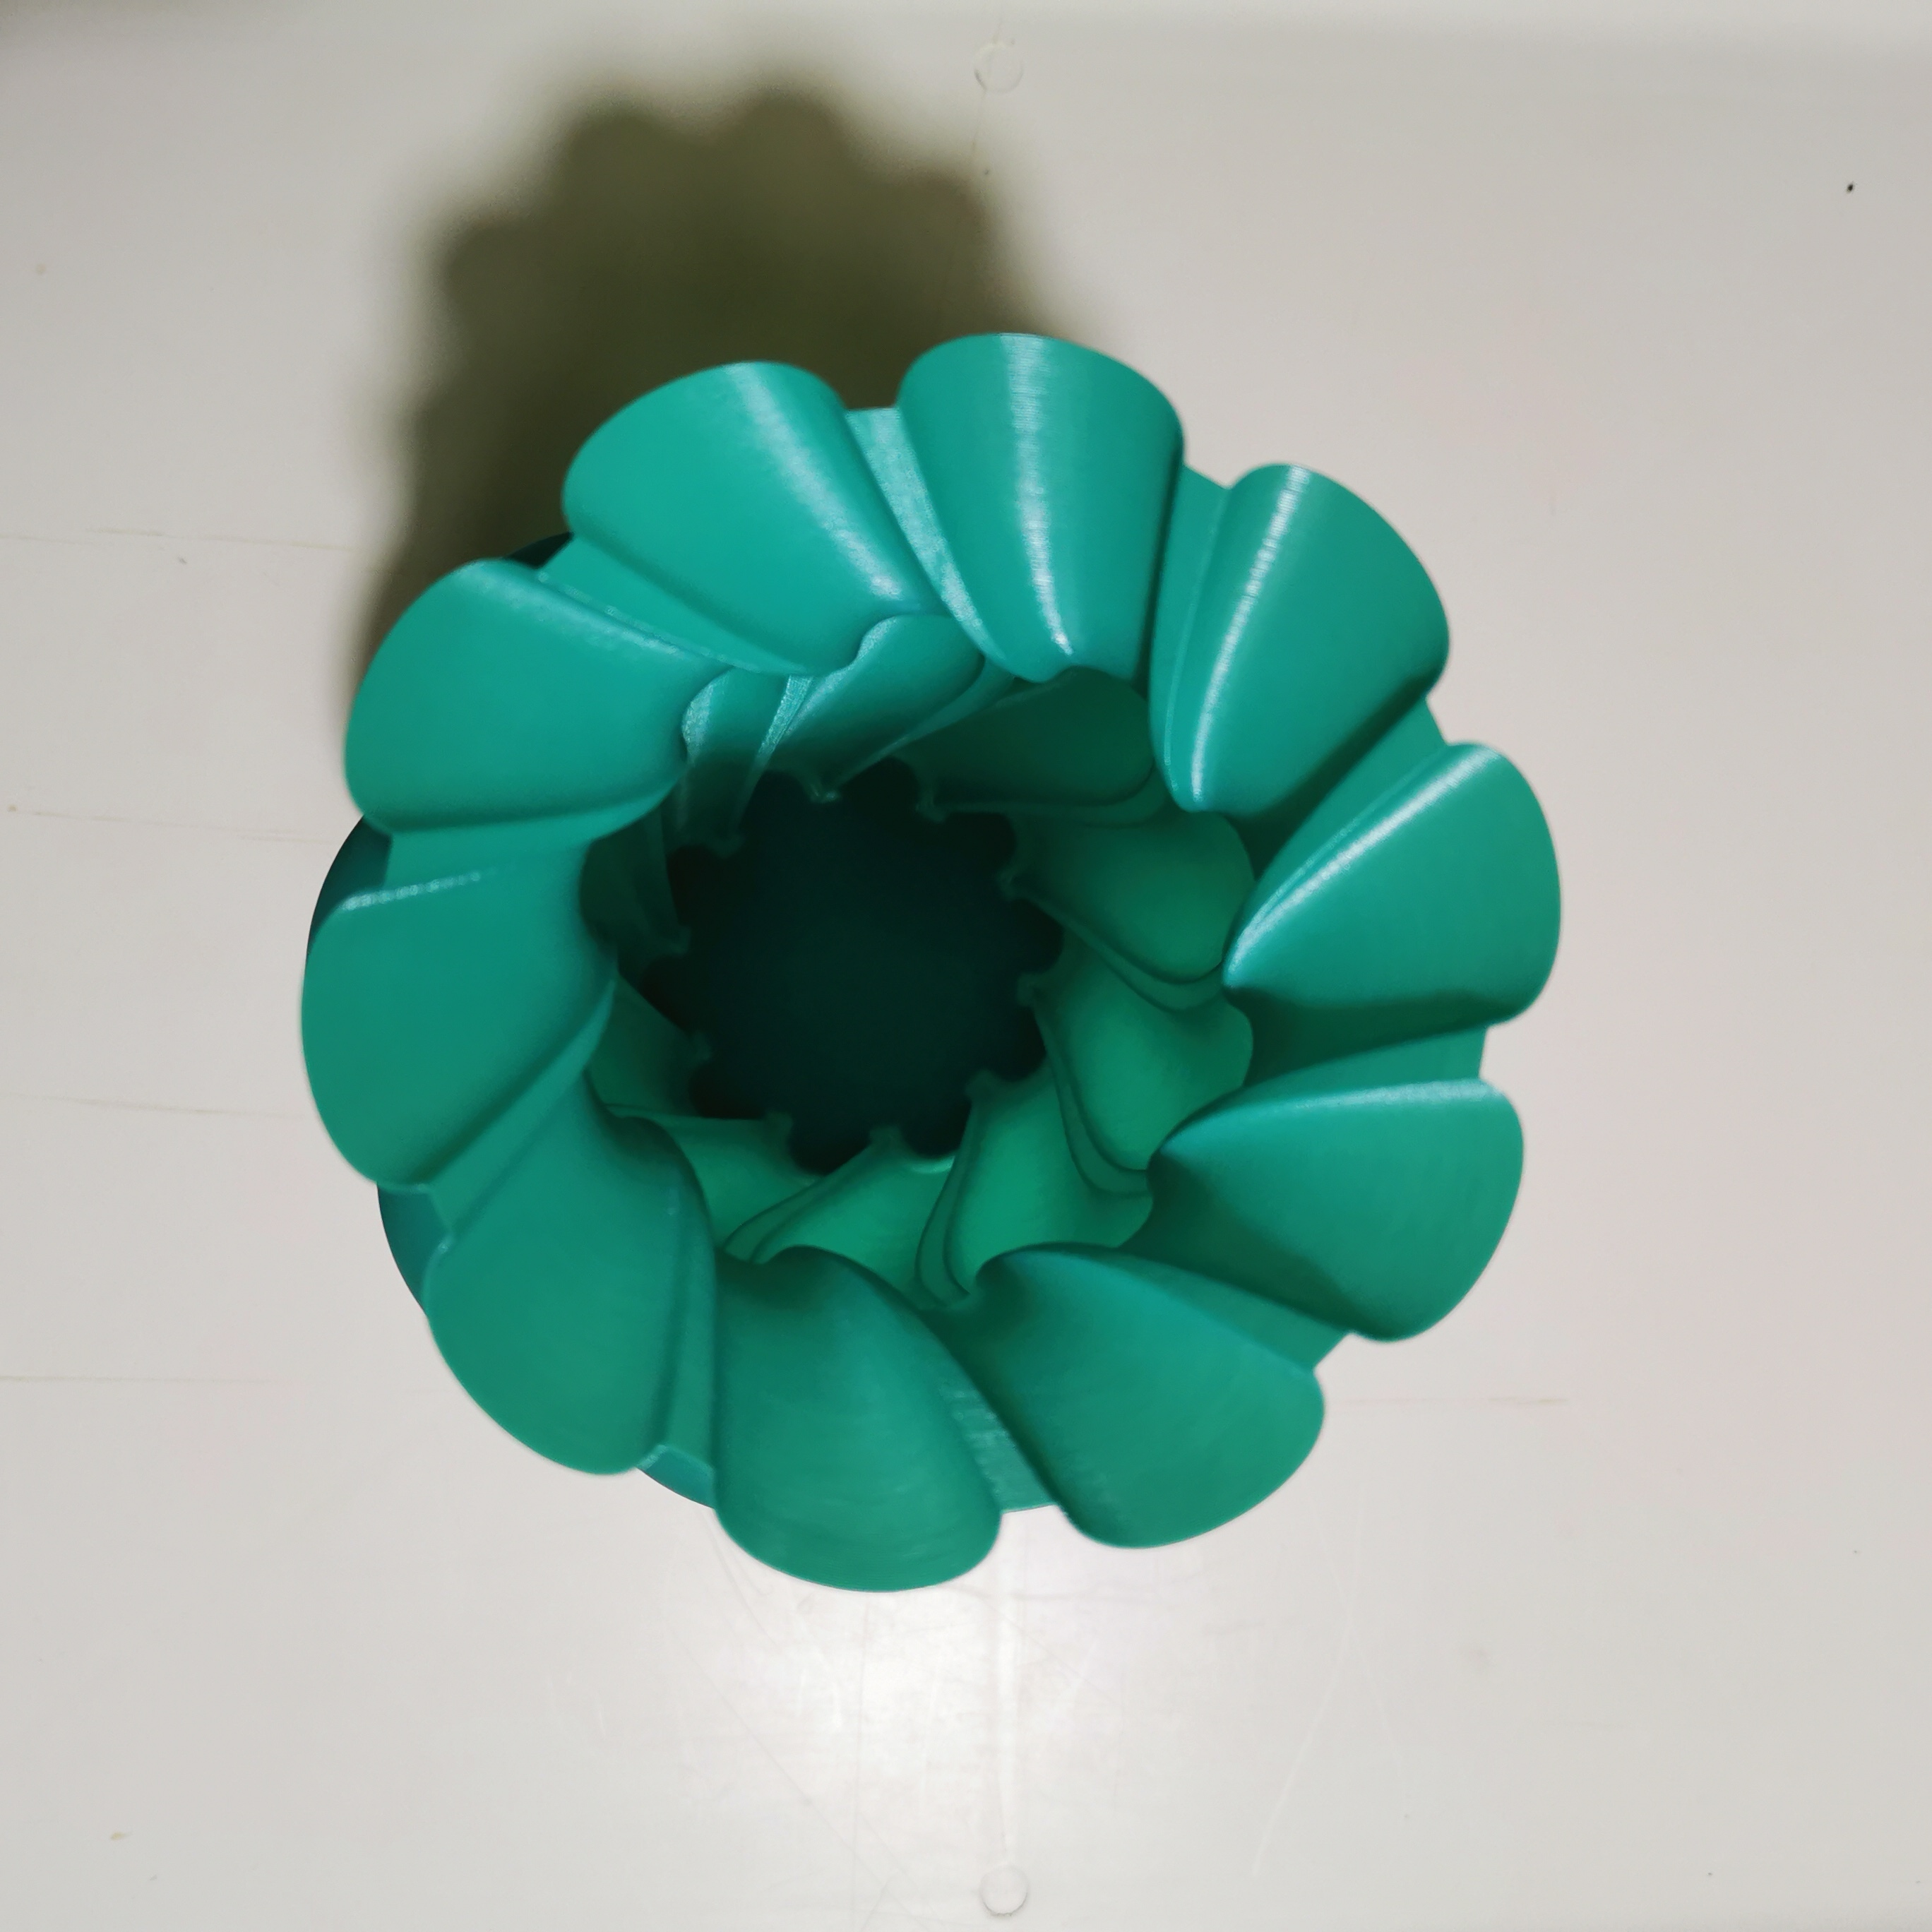 ROUNDED_TWISTED_VASE_3dprint2[1].jpg Download free STL file ROUNDED TWISTED VASE • Model to 3D print, ea3dp